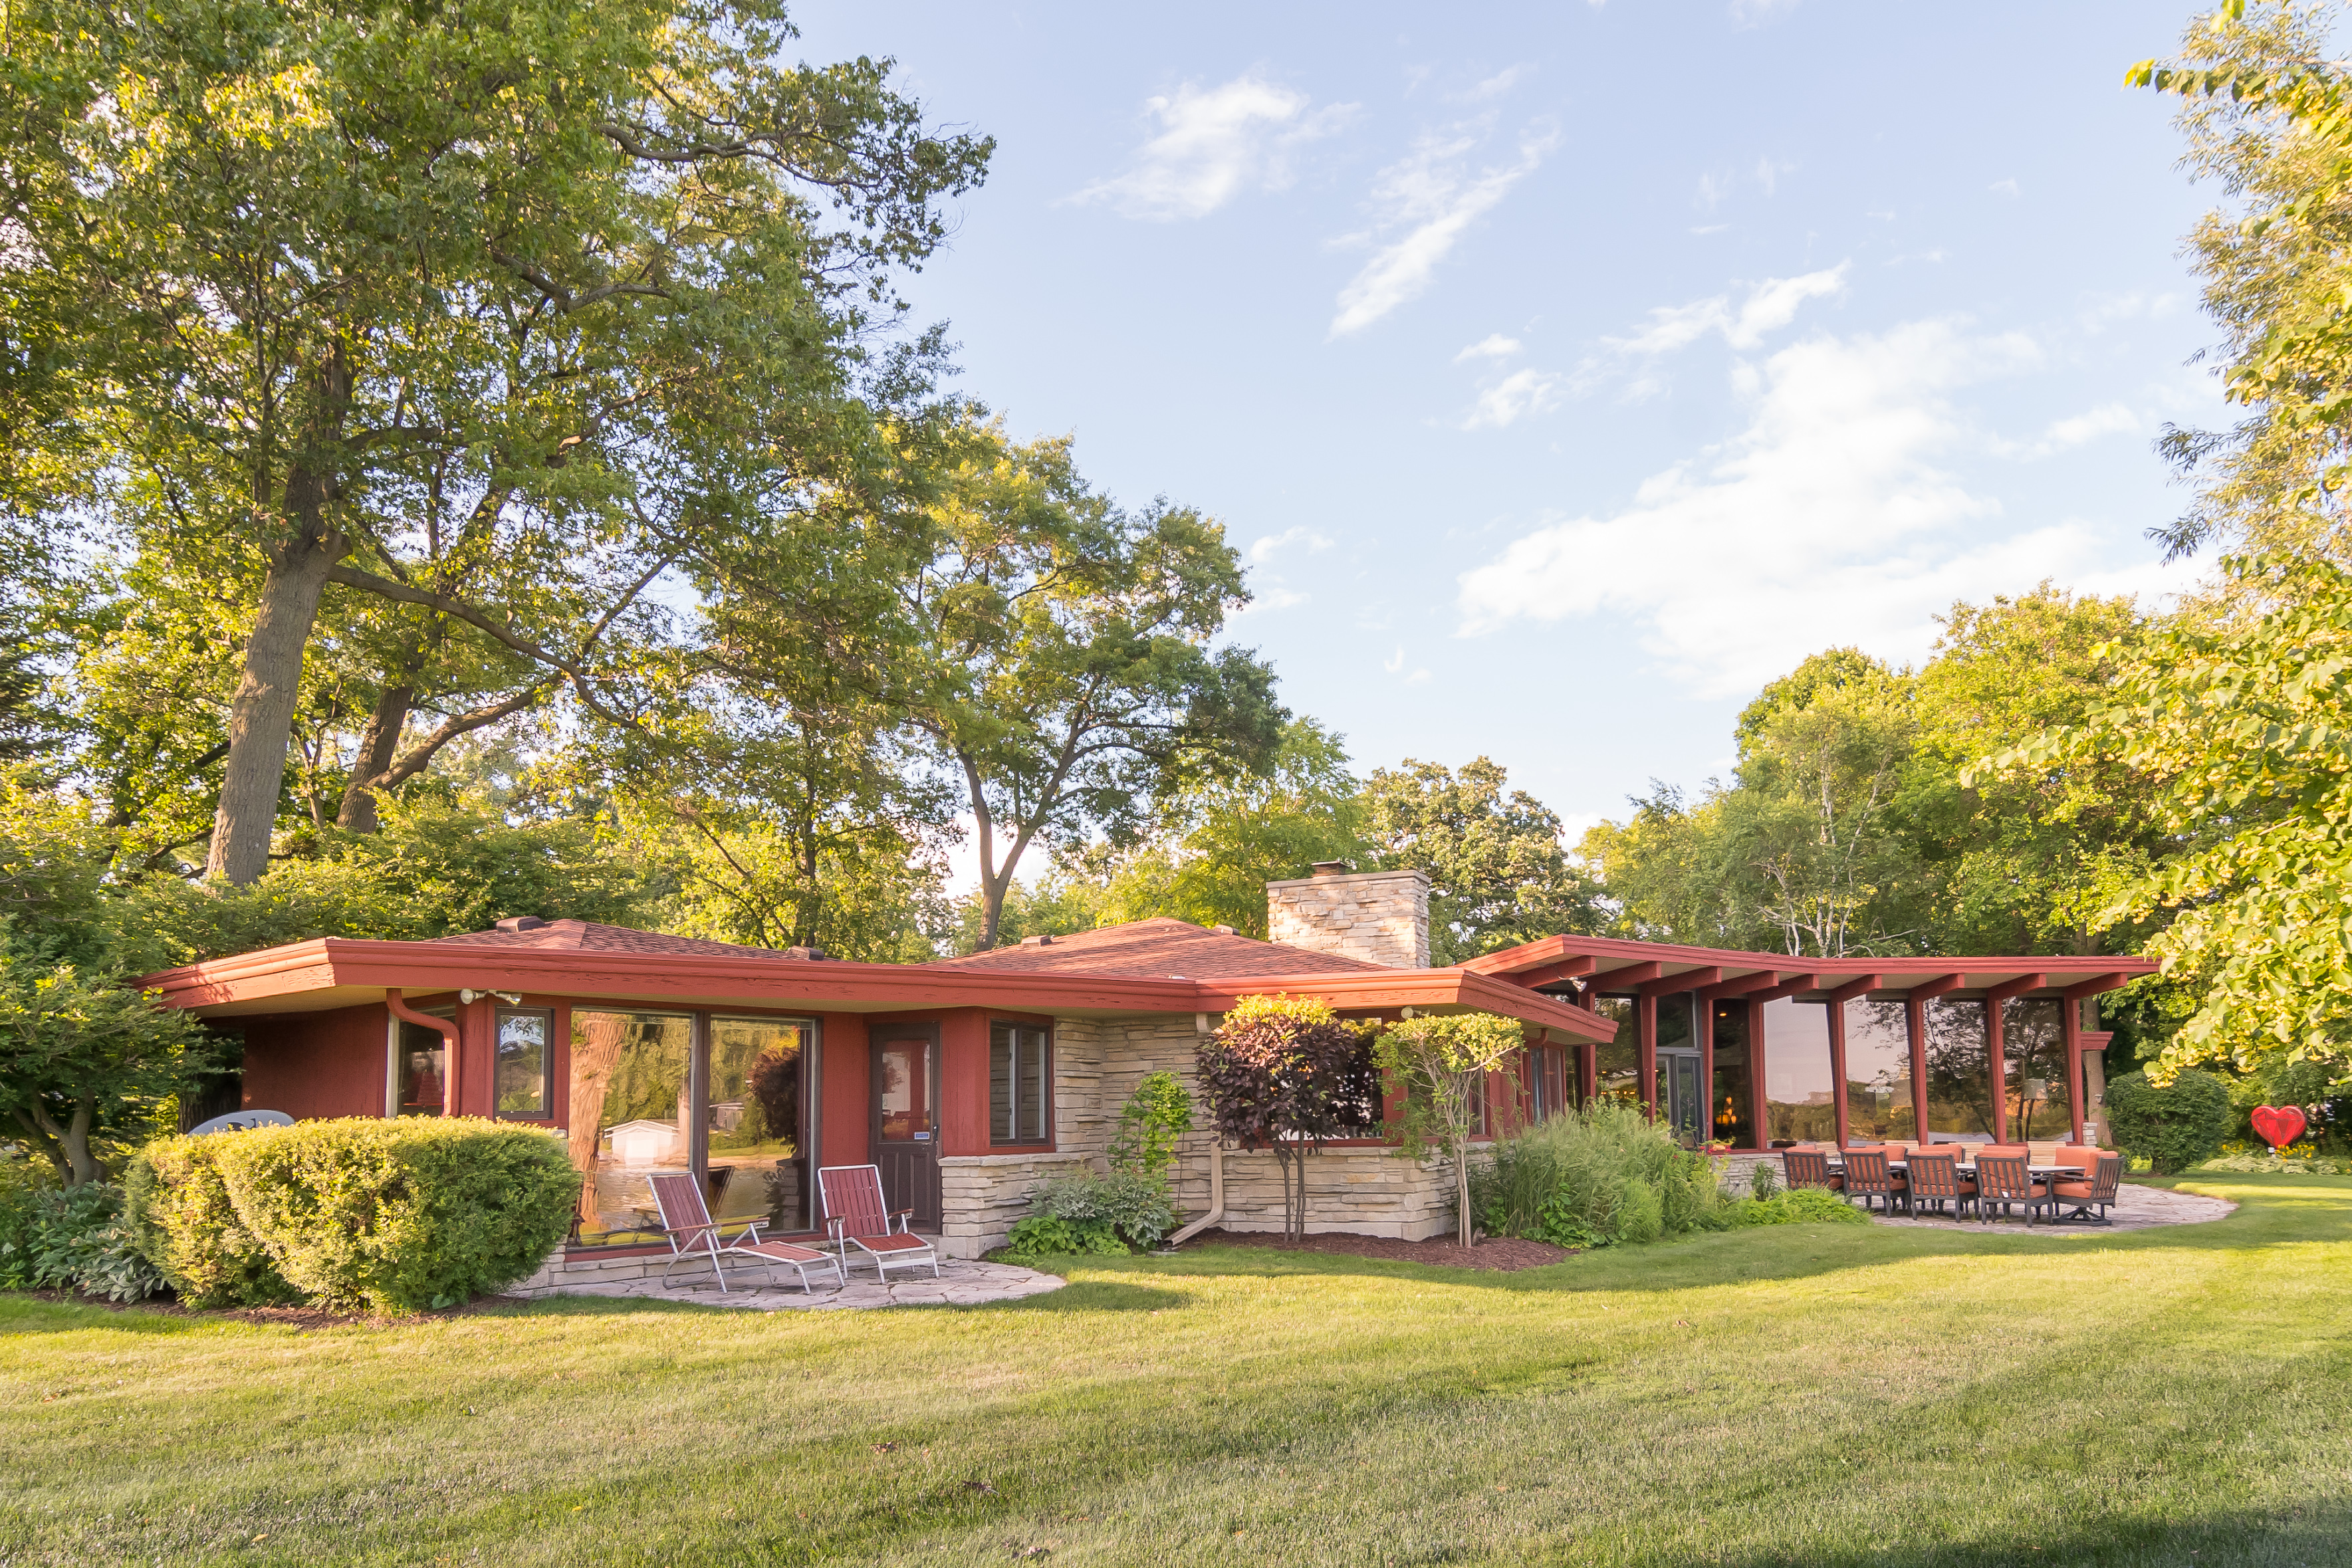 Midcentury lakefront house, beautifully restored, asks $475K